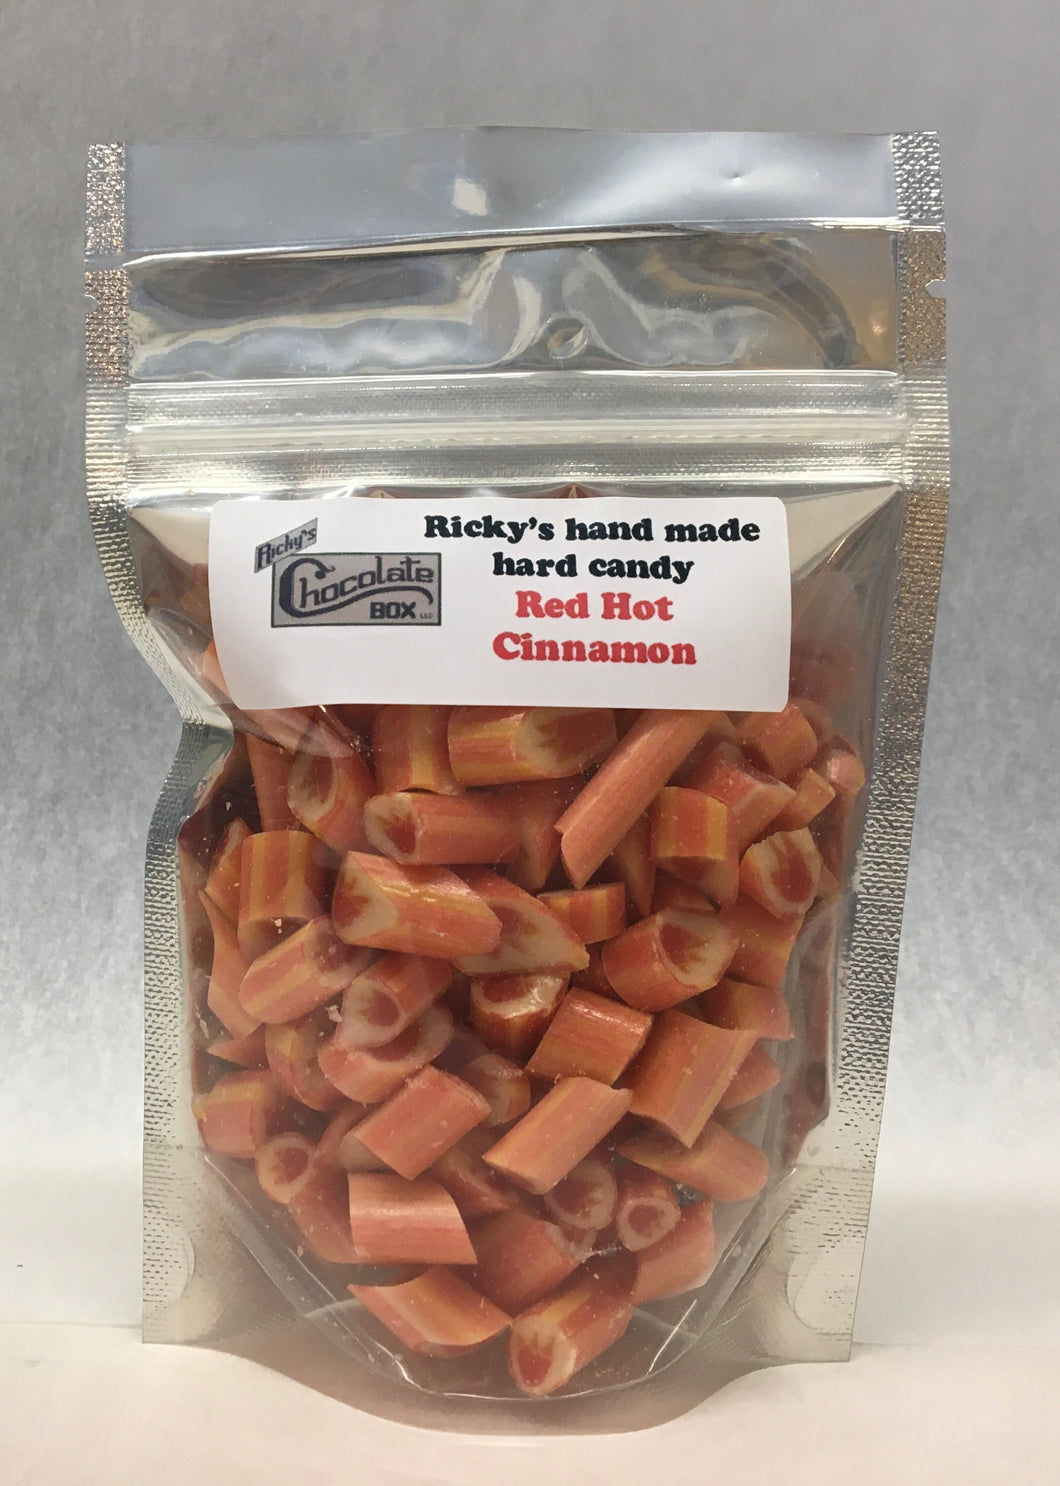 Red Hot Cinnamon Hard Candy